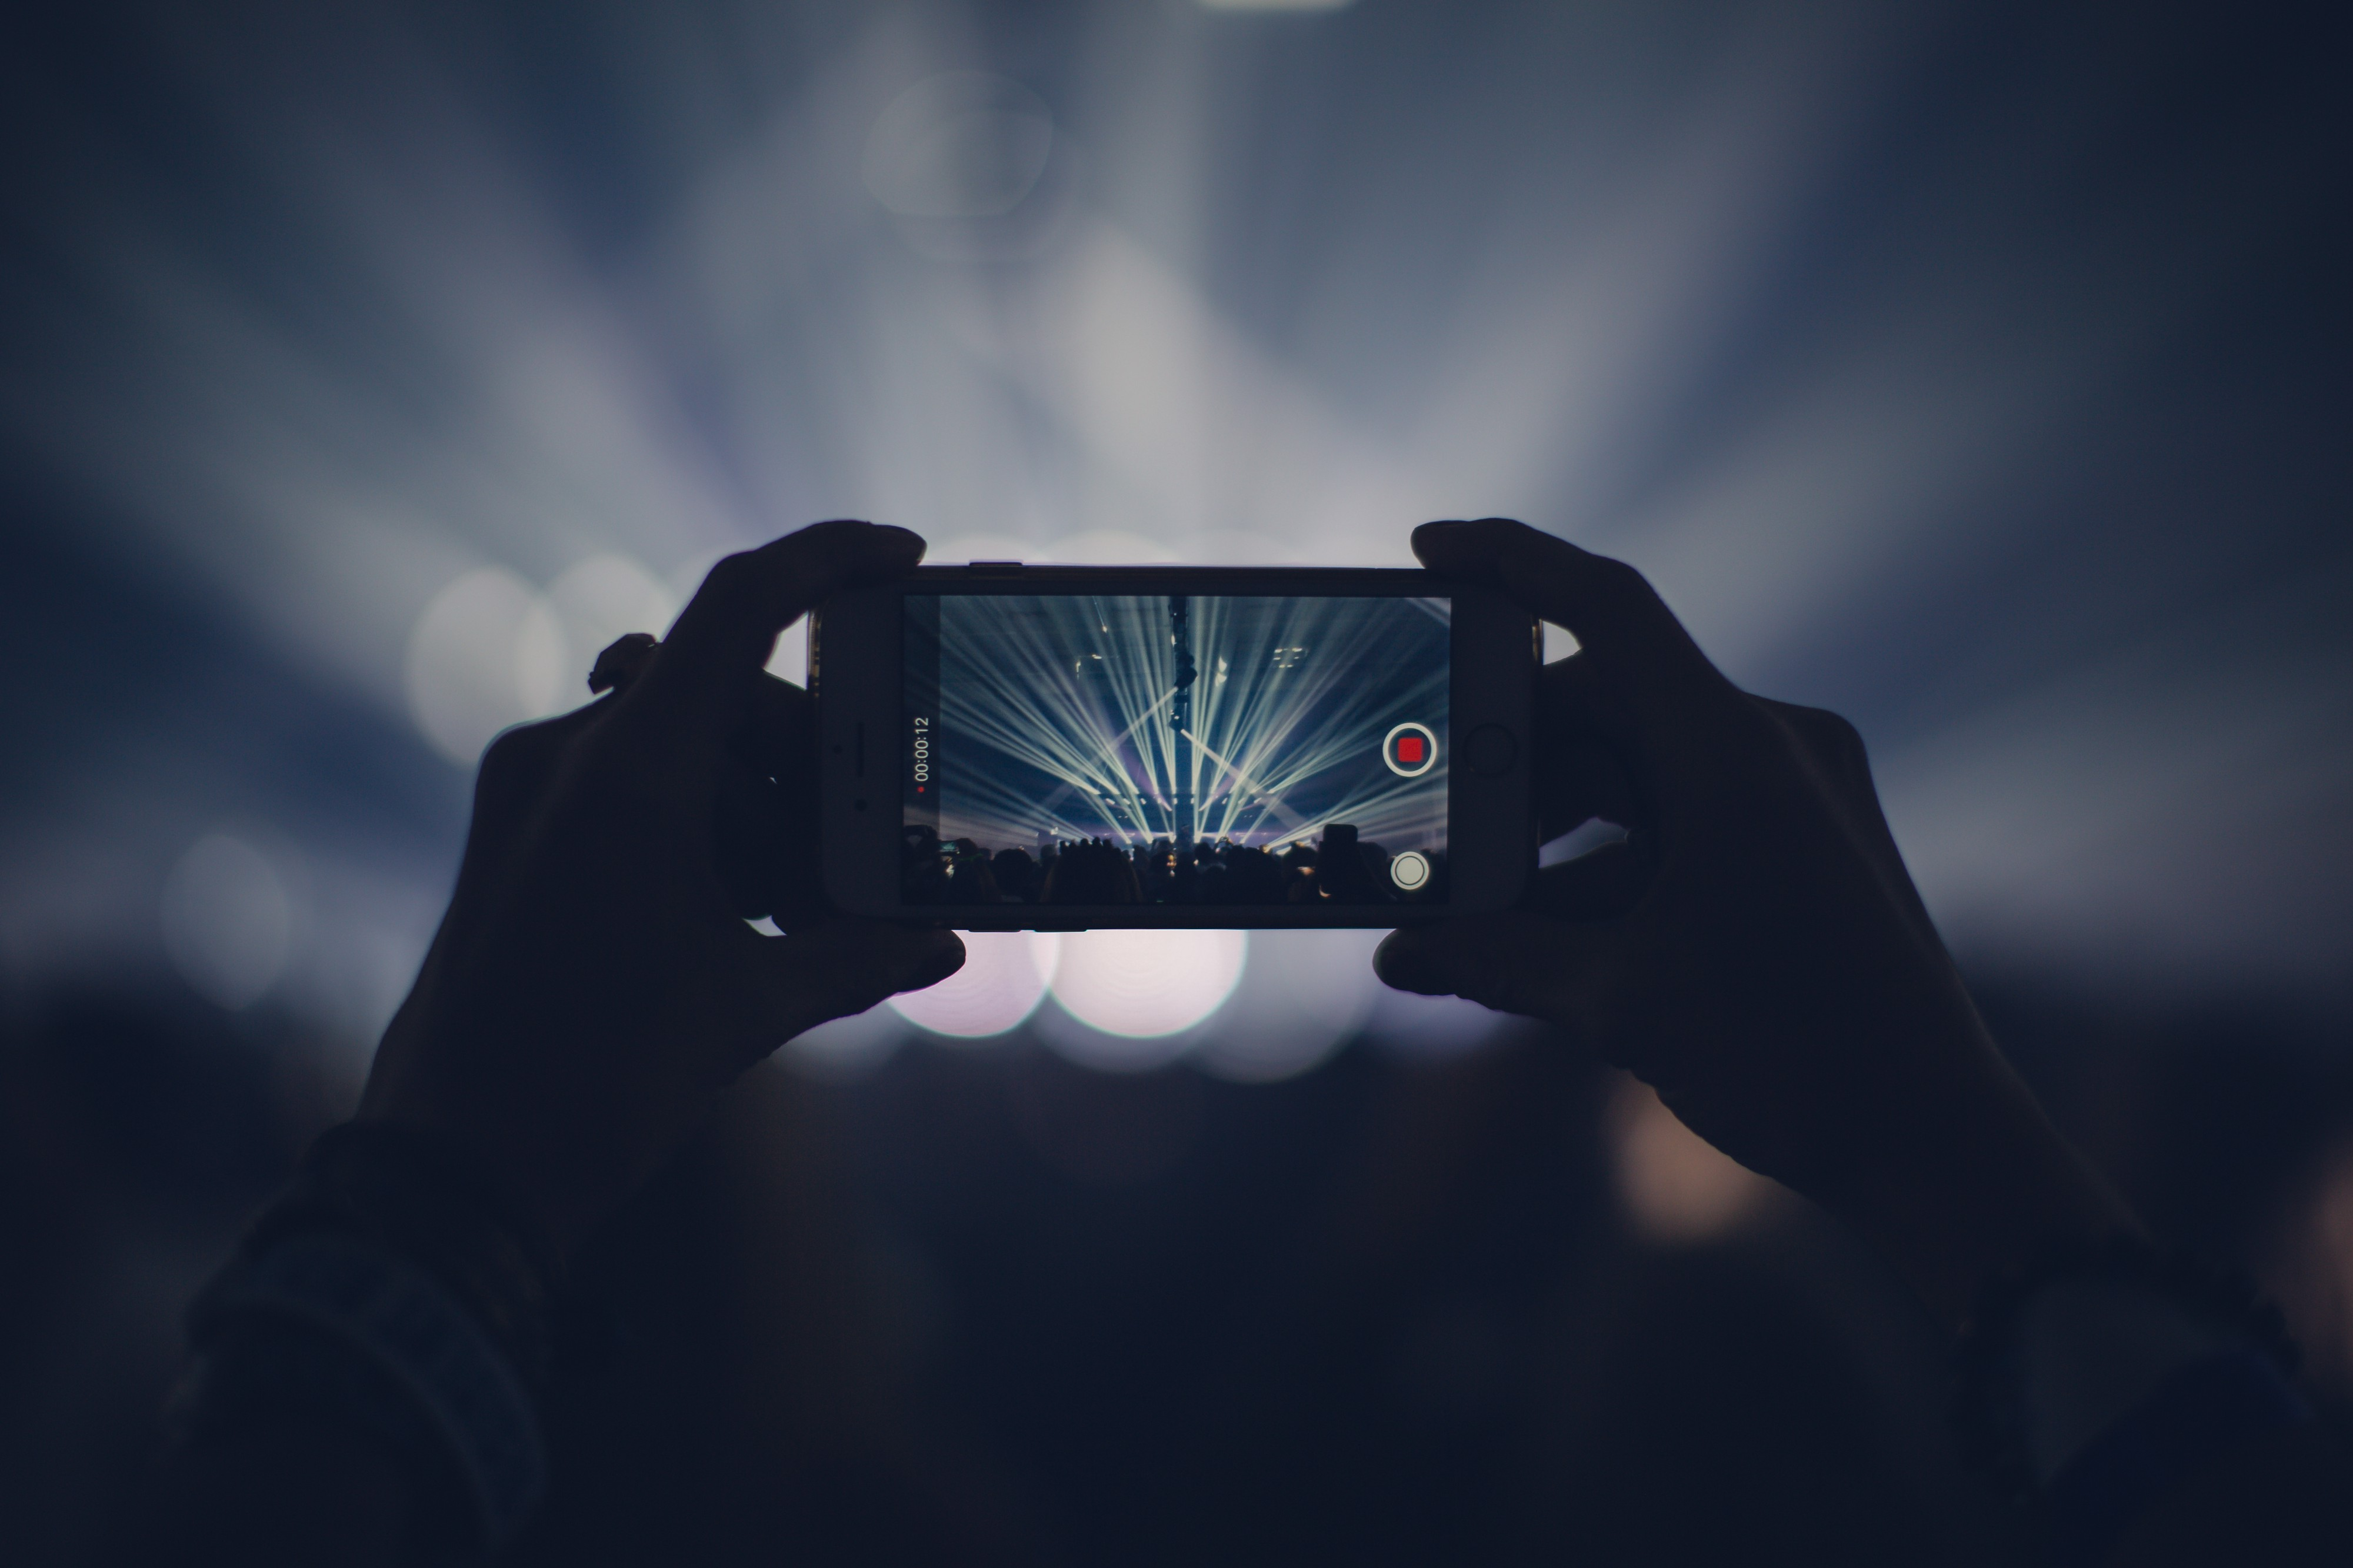 Live Video is Authentic - ART + marketing